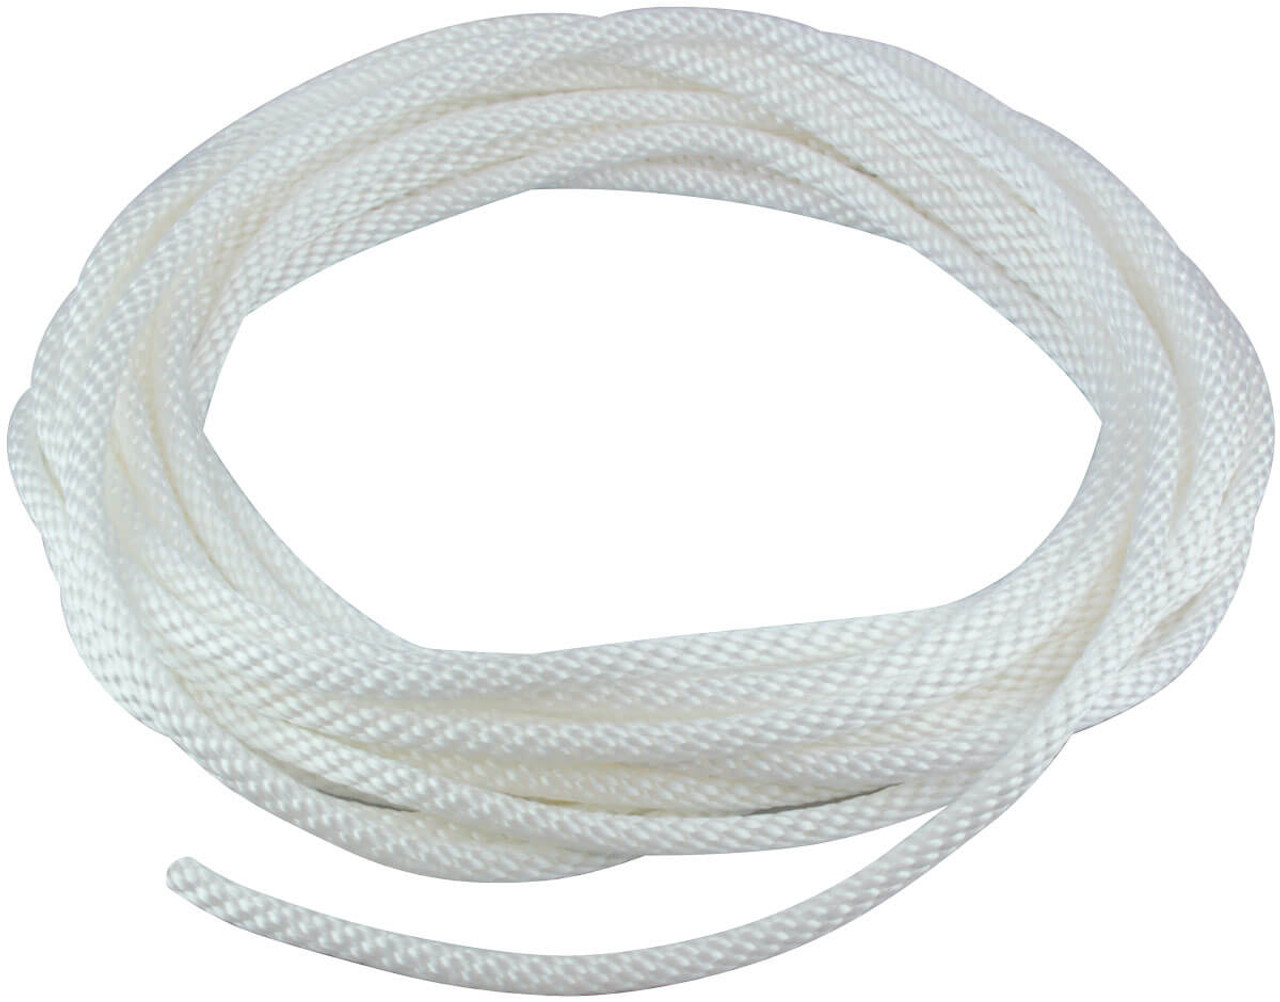 Solid Braided Polypropylene Rope